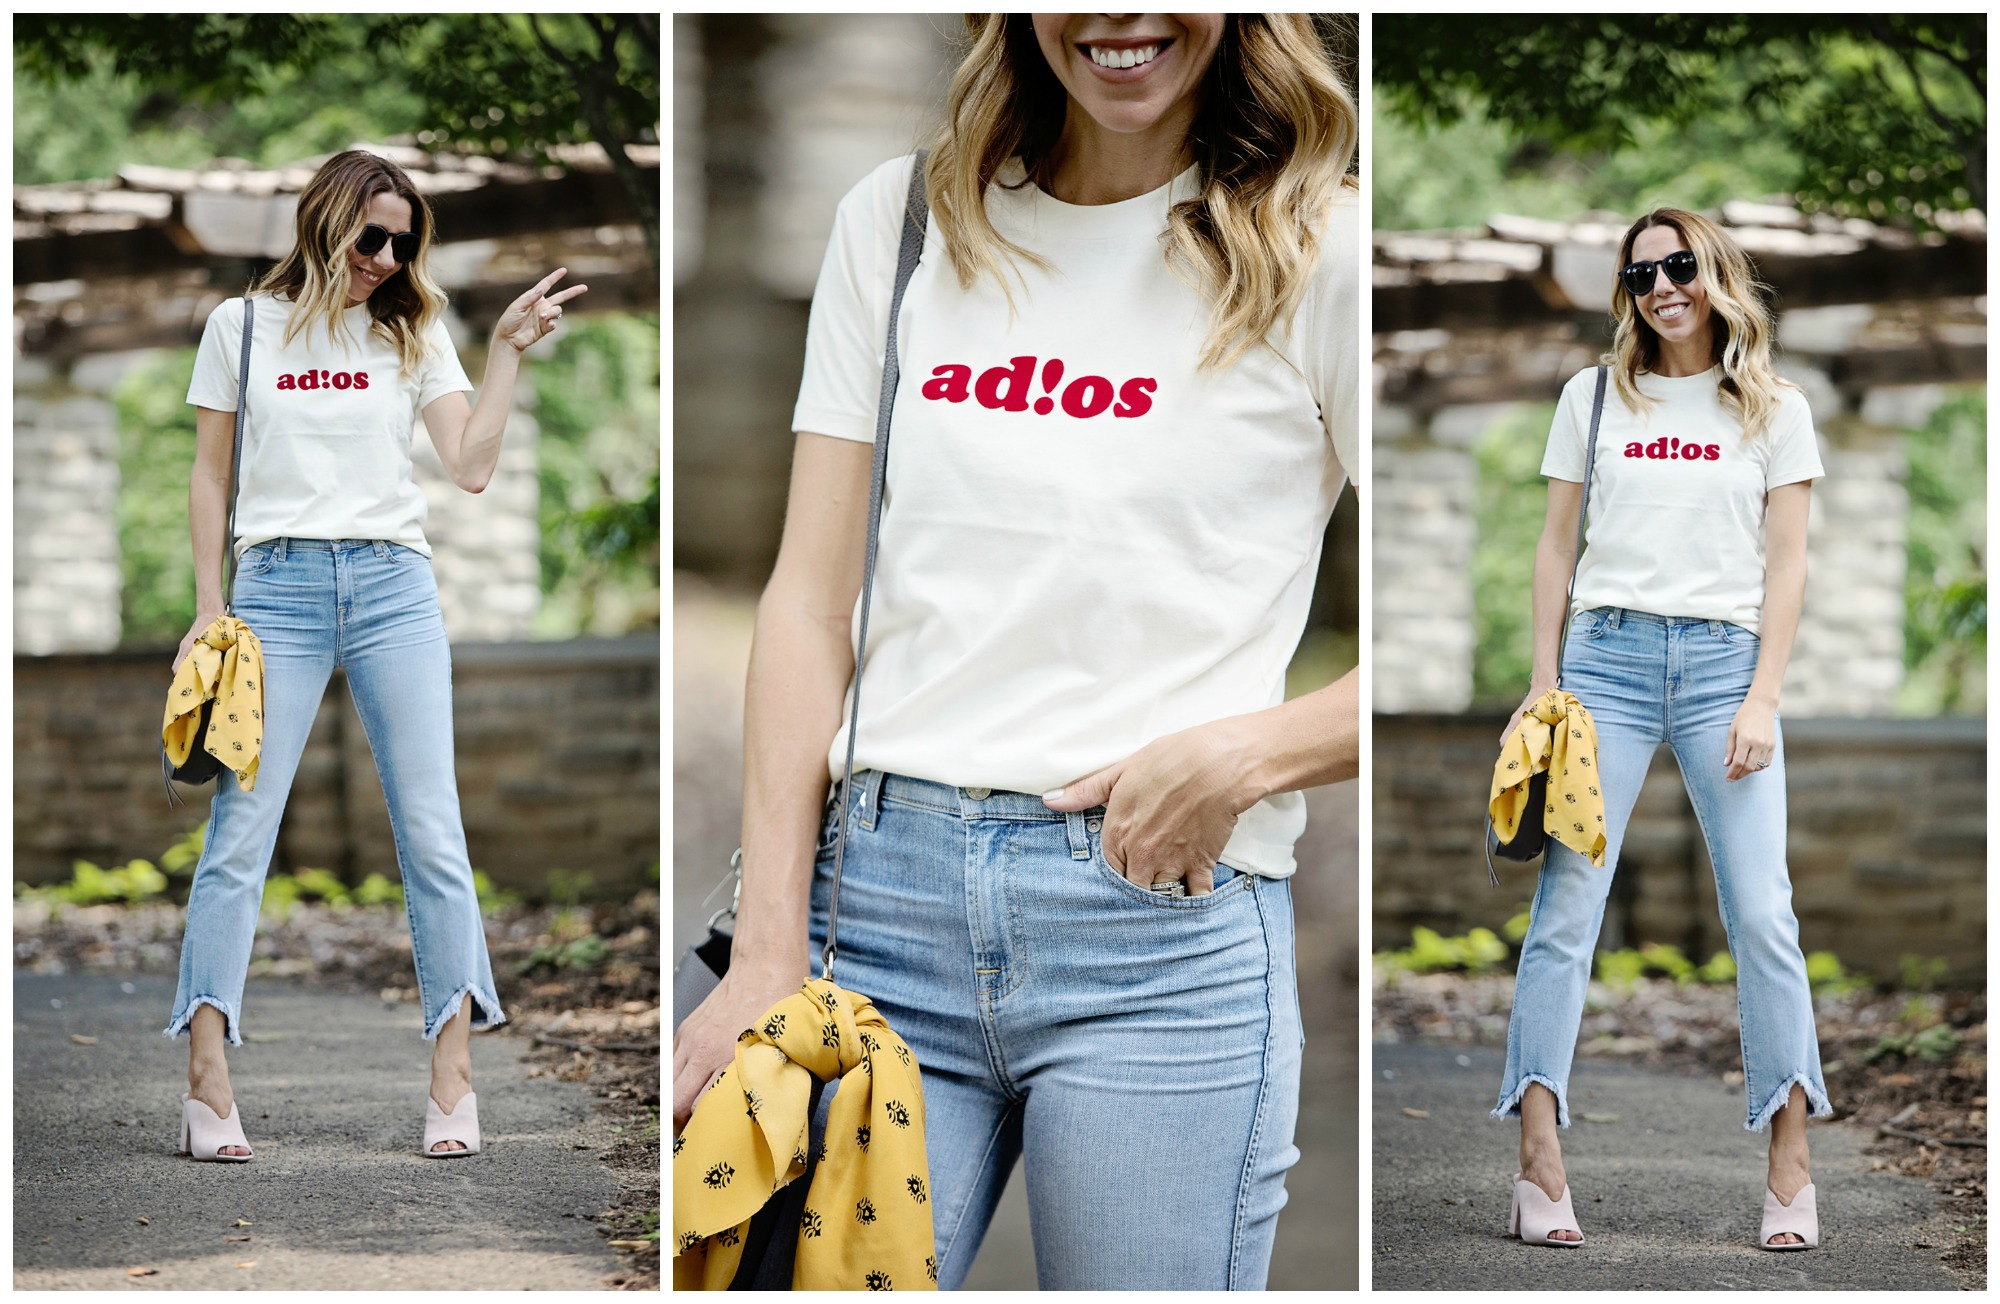 The Motherchic wearing nordstrom anniversary sale madewell tee and 7 jeans